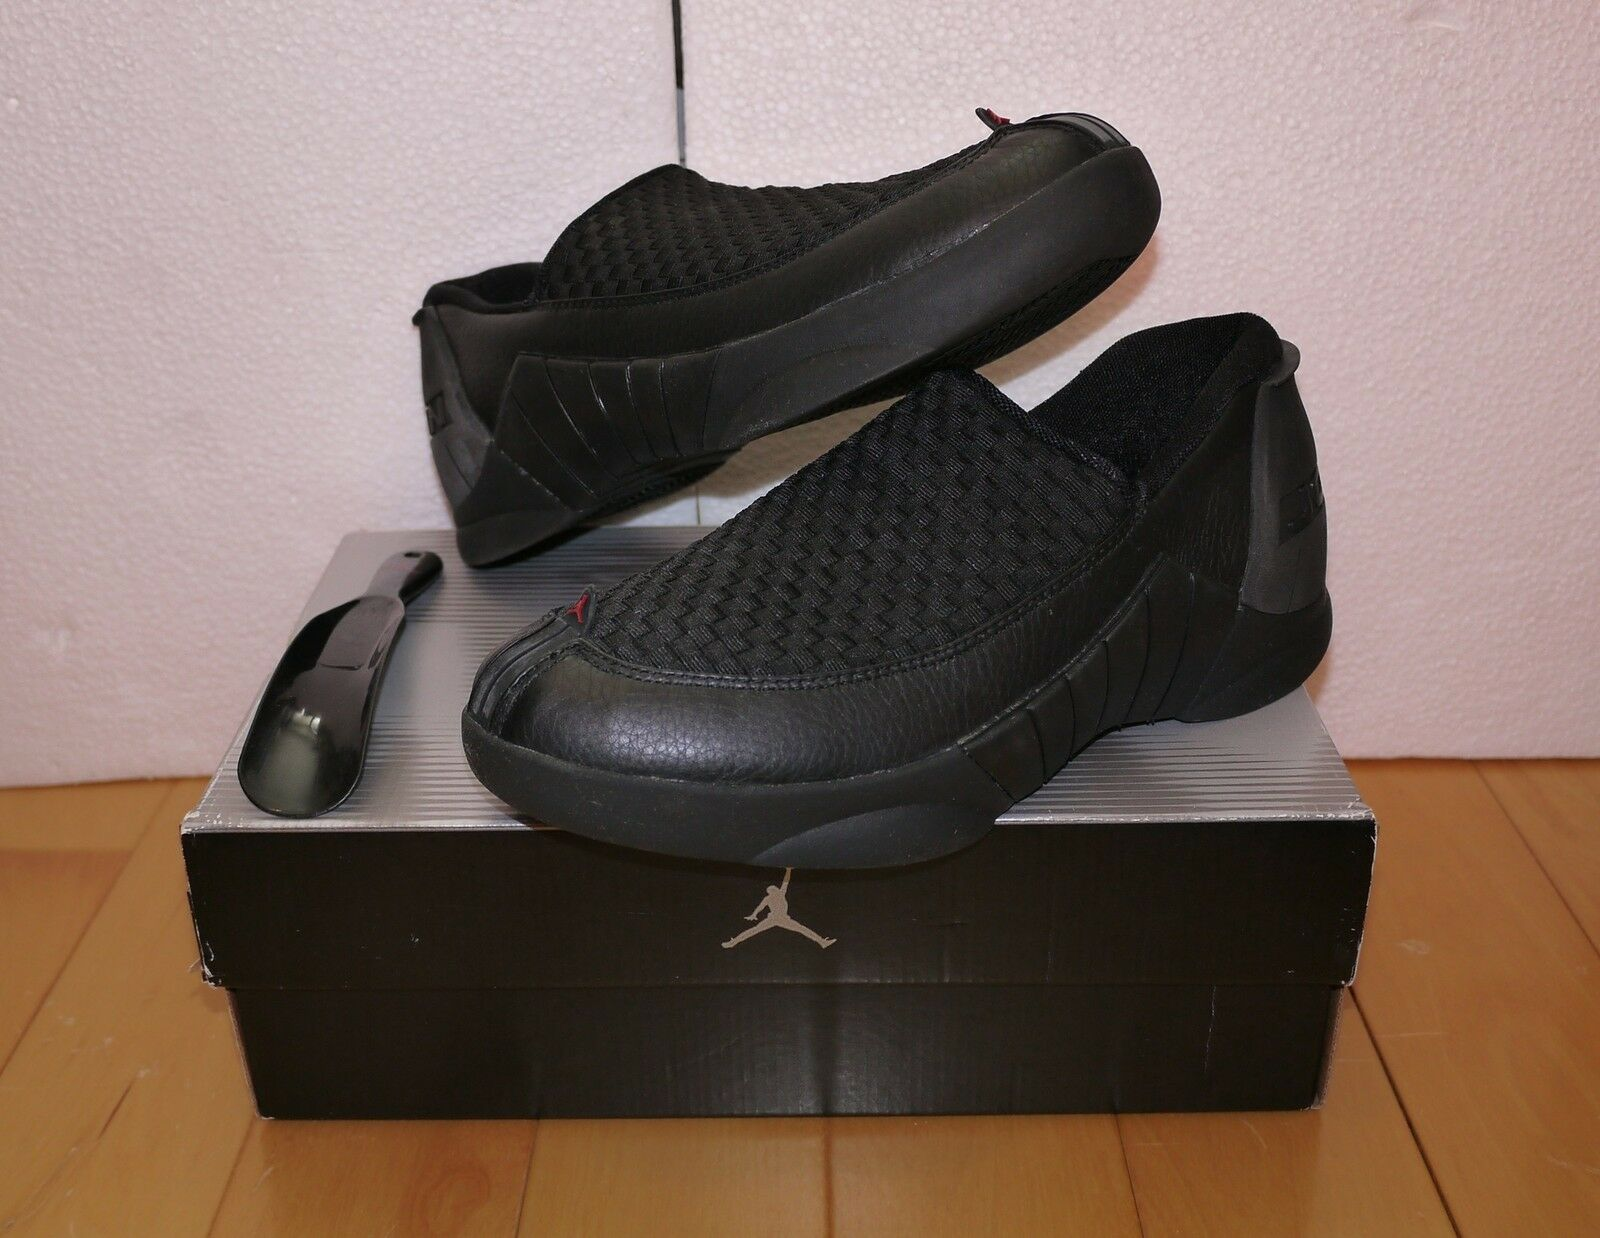 NIKE AIR JORDAN 15 MOC LOW SHOES (SIZE 8.5) (136042-002) NEW IN BOX w shoes Horn